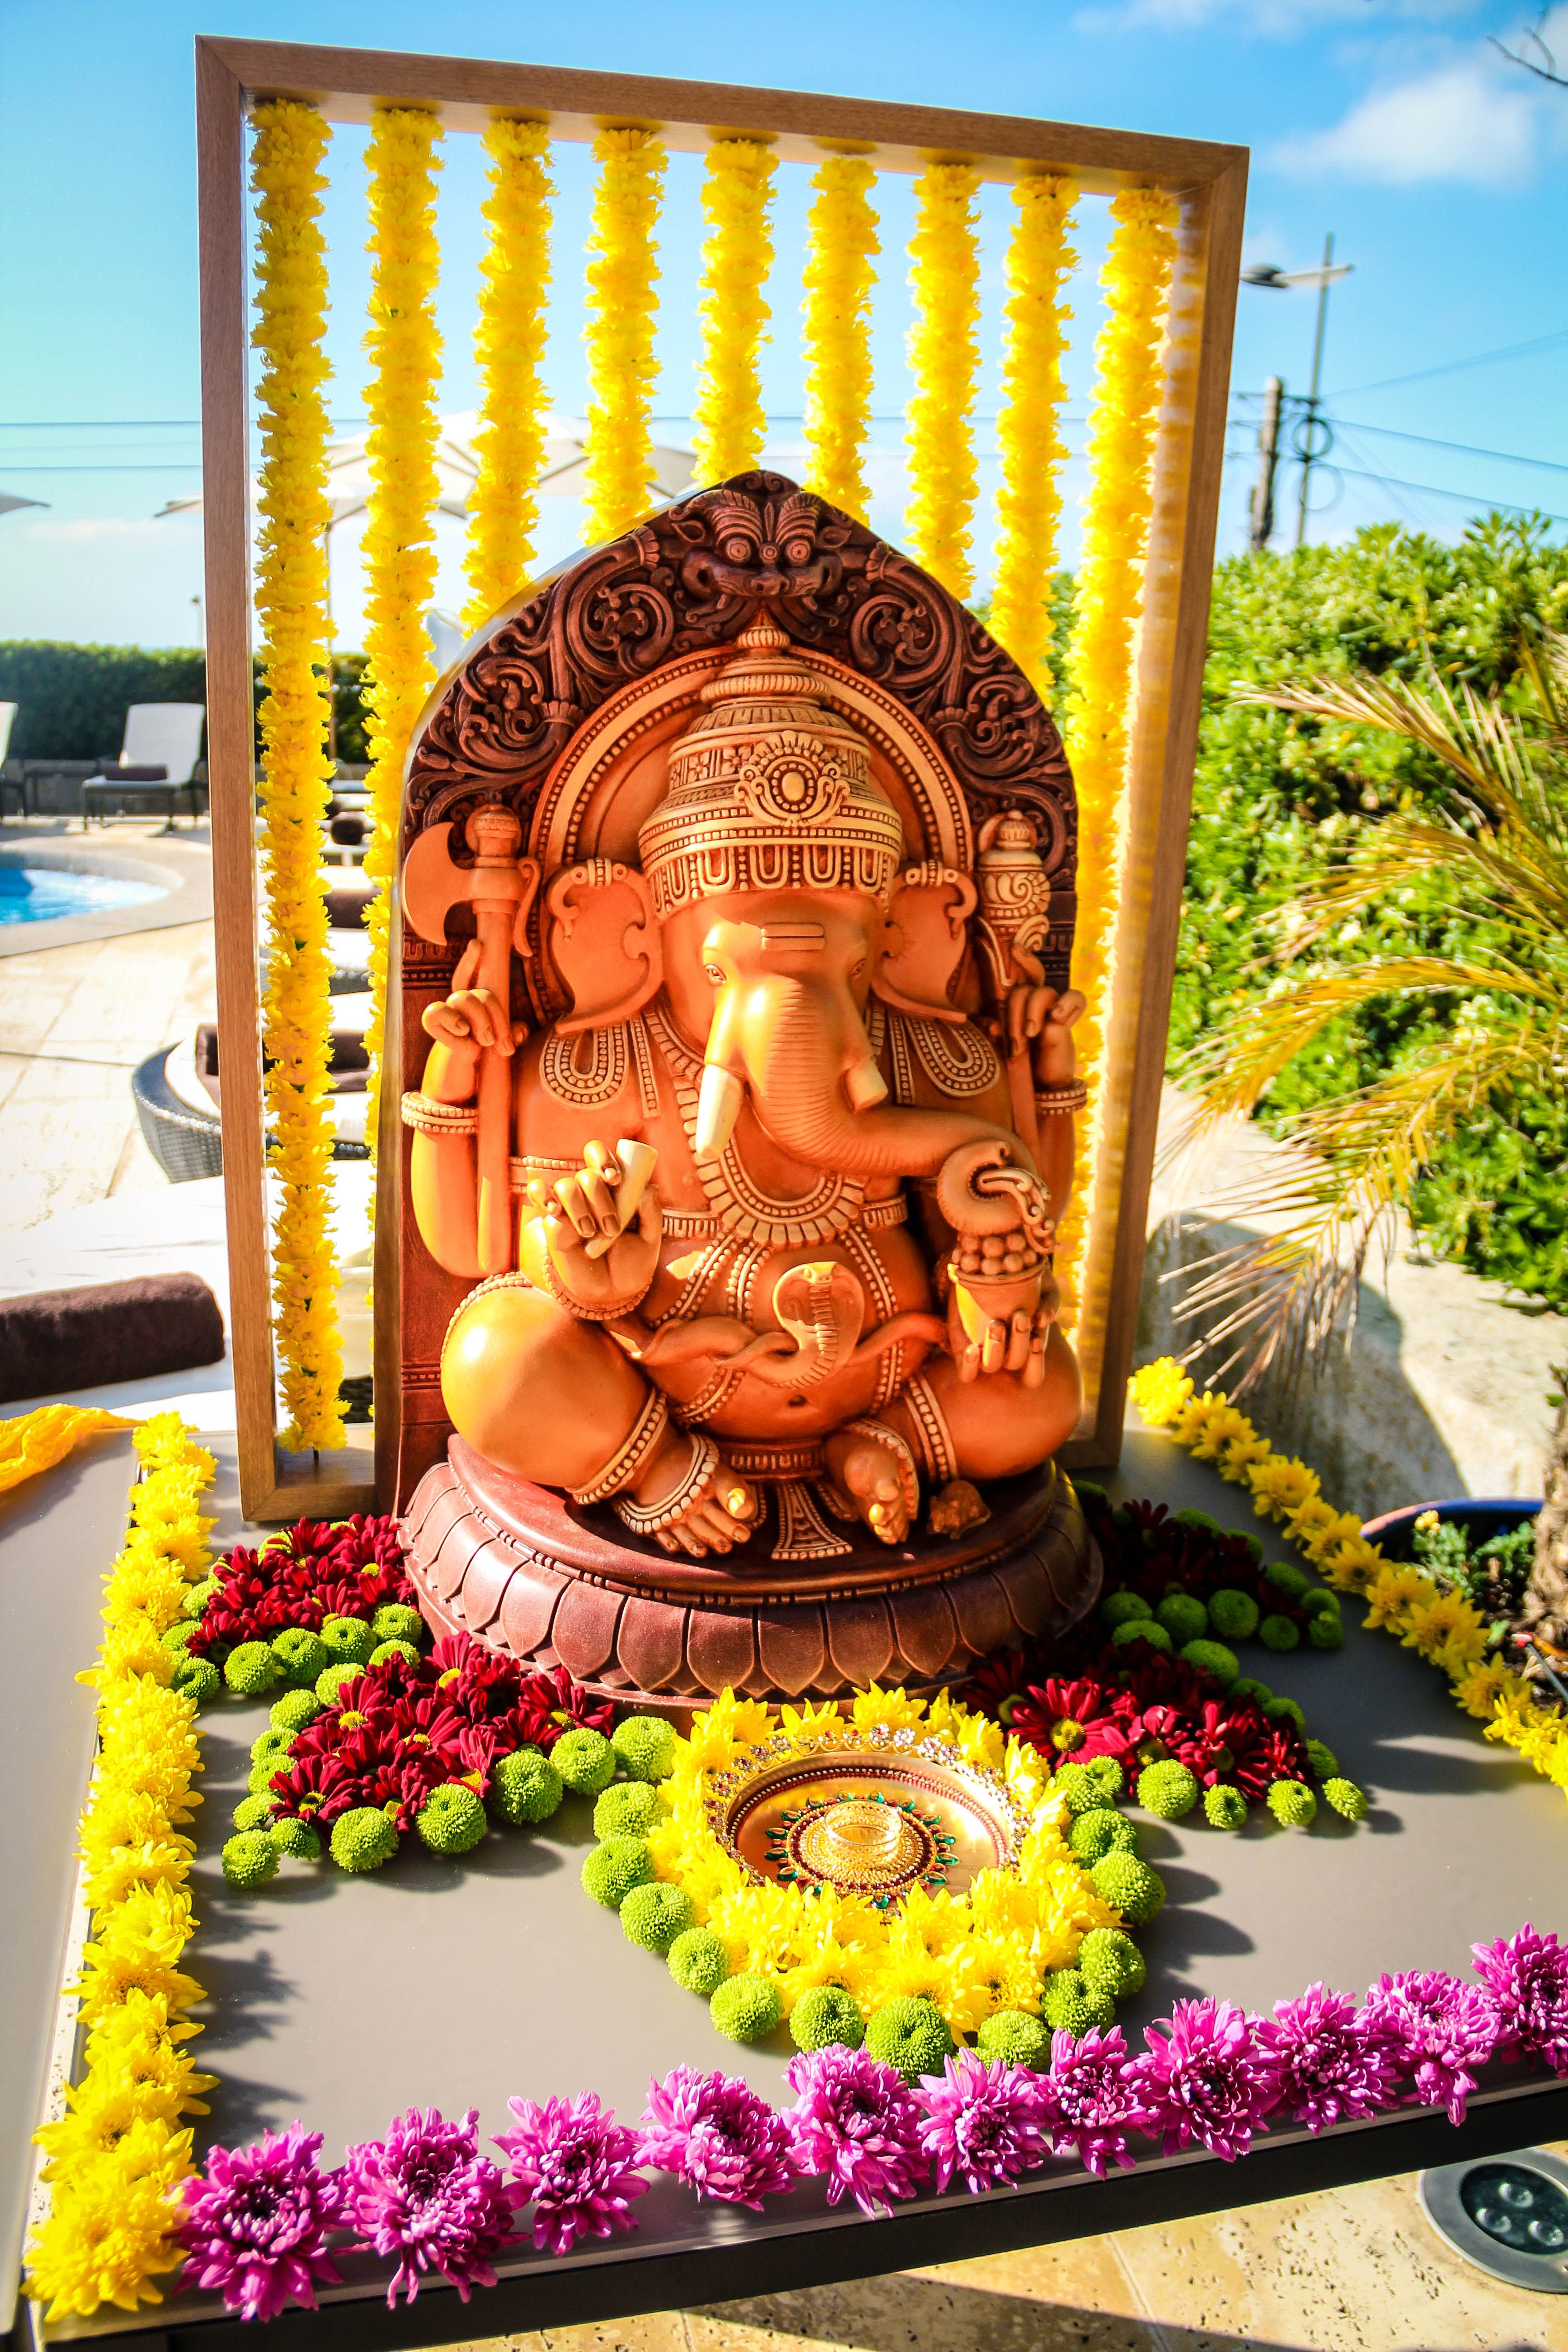 Indian Wedding Ceremony in Portugal: Ganesh Puja (Prayer to Lord